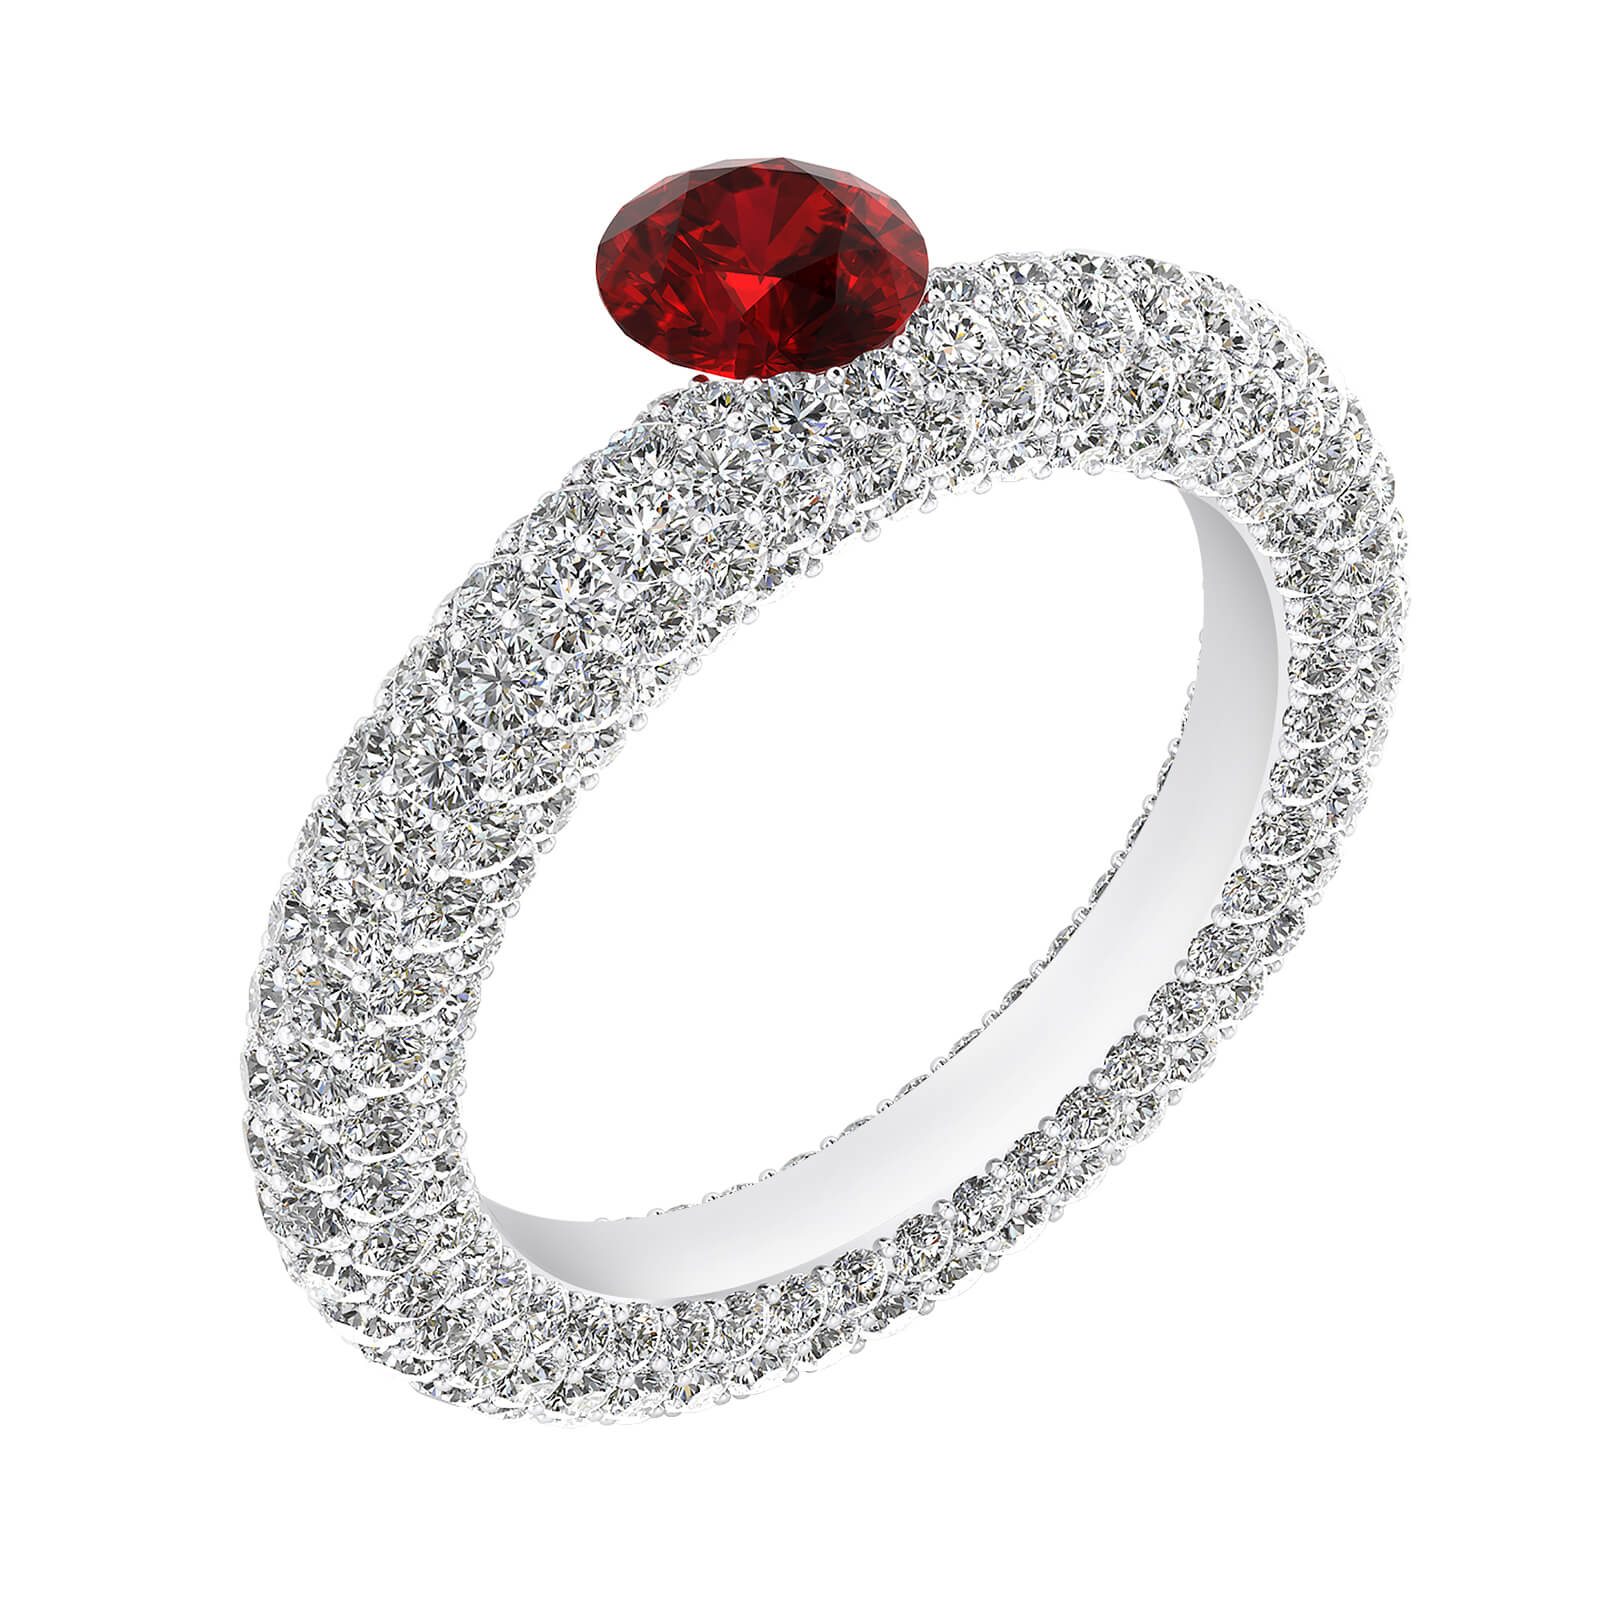 Engagement Rings white gold with 143 diamonds and a natural Burma ruby